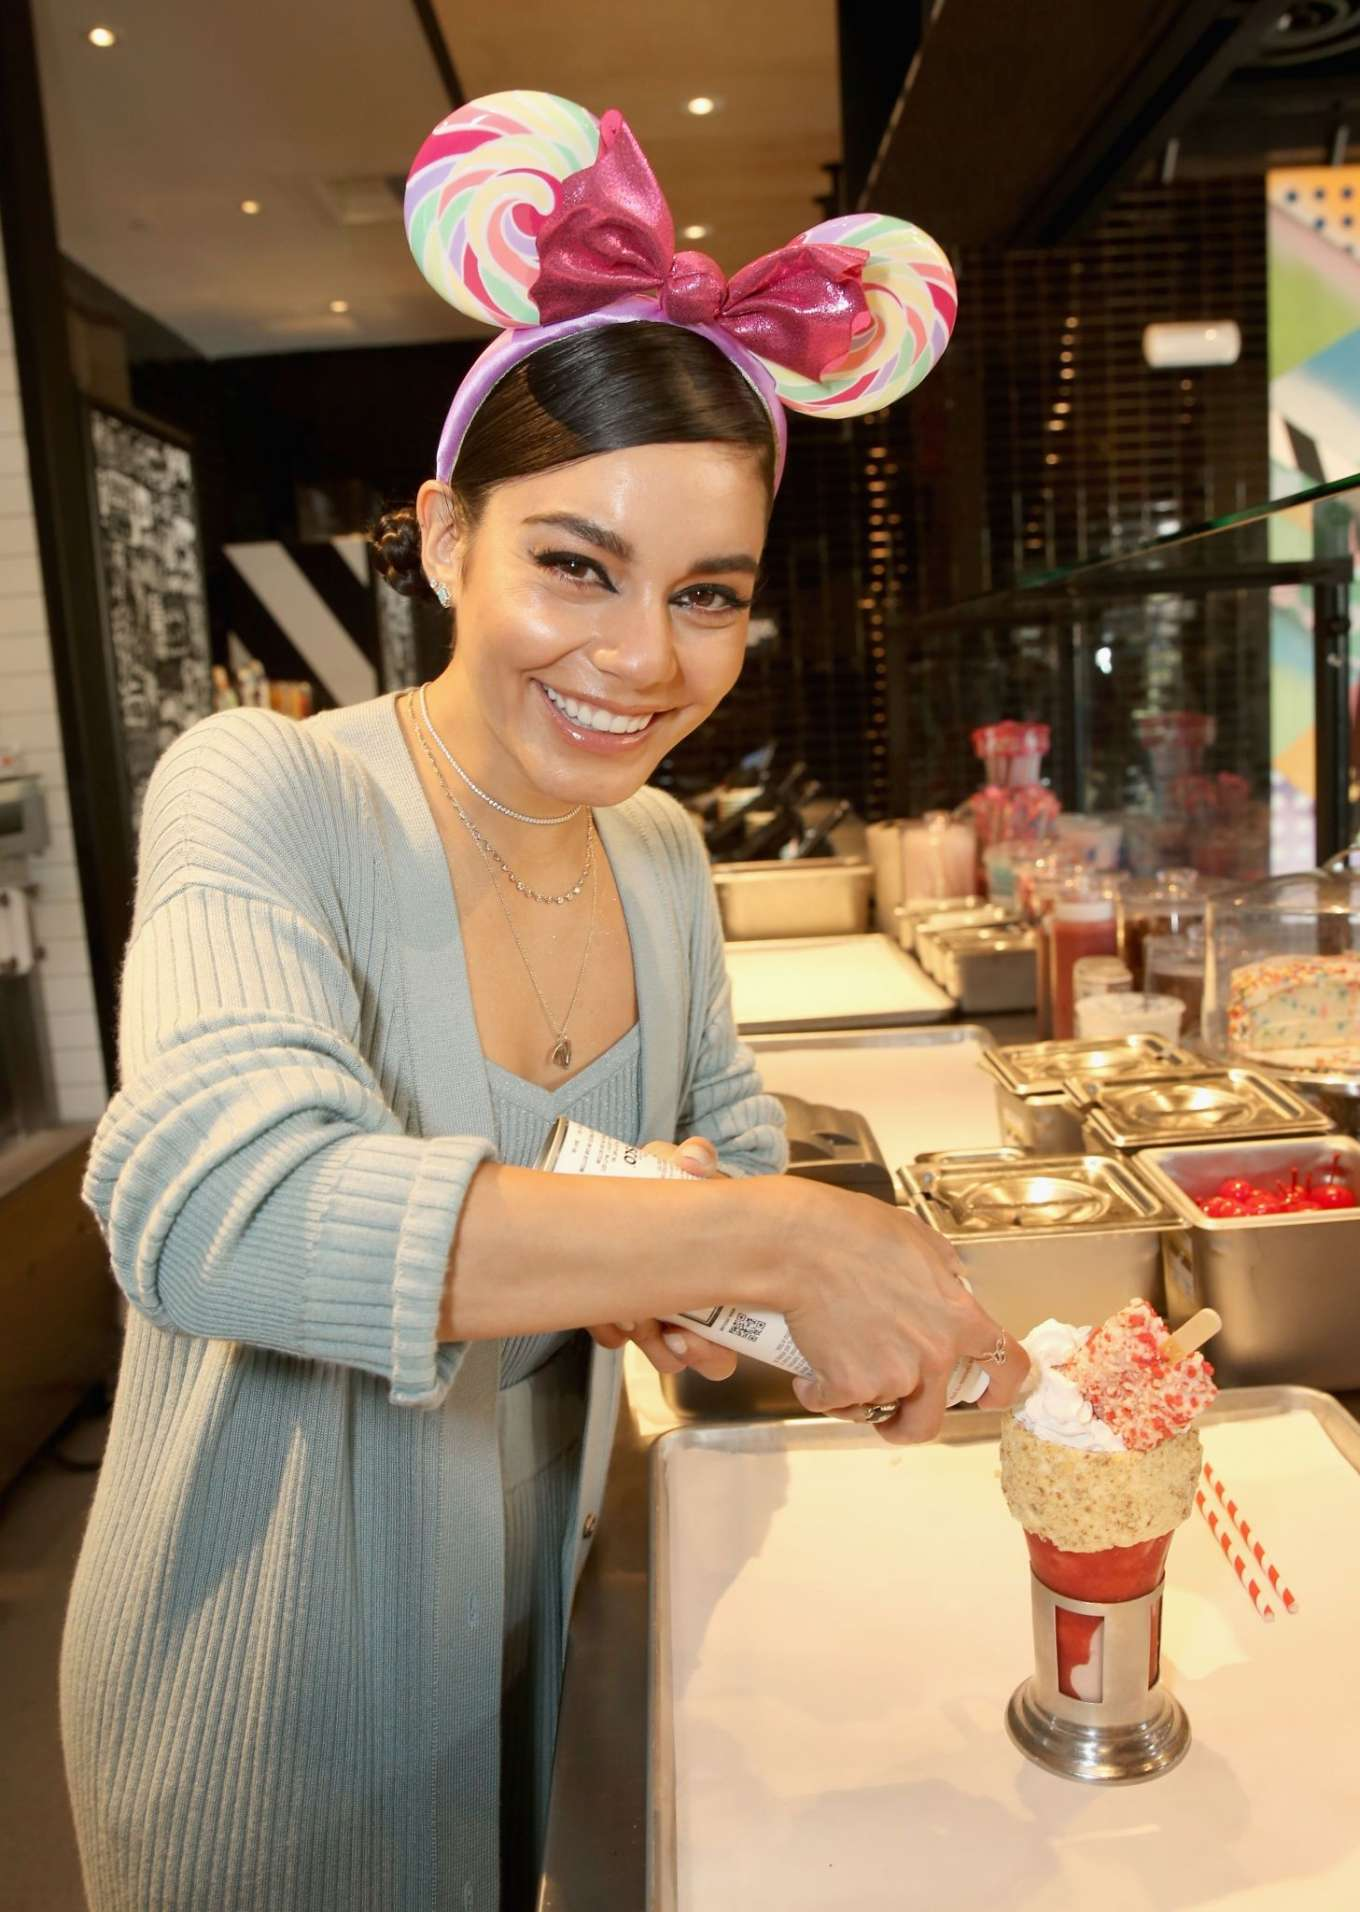 Vanessa Hudgens - Opening of Black Tap Craft Burgers and Shakes in Anaheim